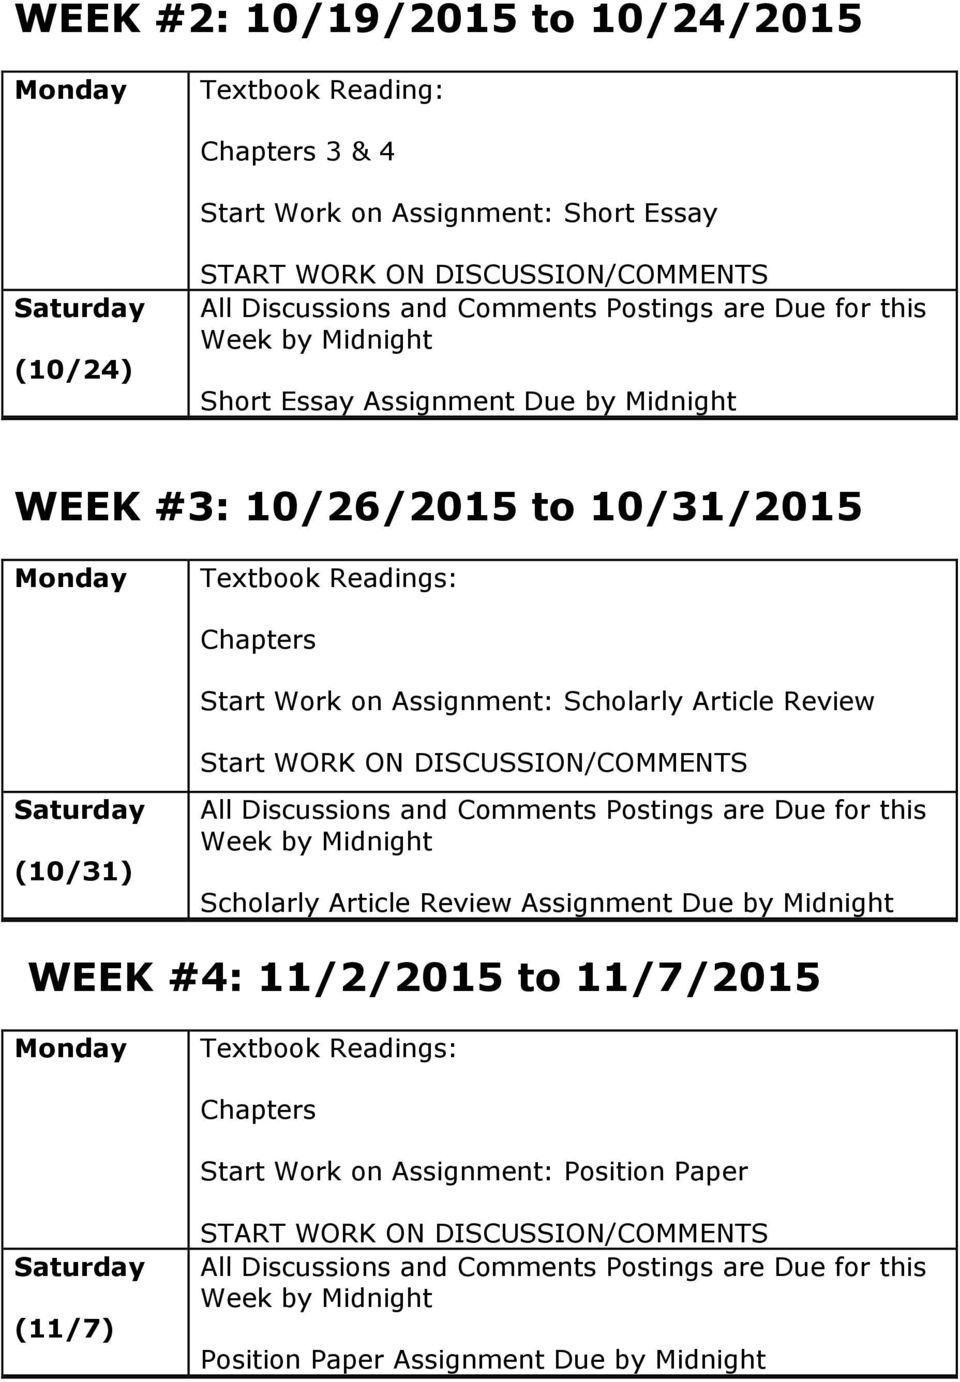 Review Start WORK ON DISCUSSION/COMMENTS Saturday (10/31) All Discussions and Comments Postings are Due for this Week by Midnight Scholarly Article Review Assignment Due by Midnight WEEK #4: